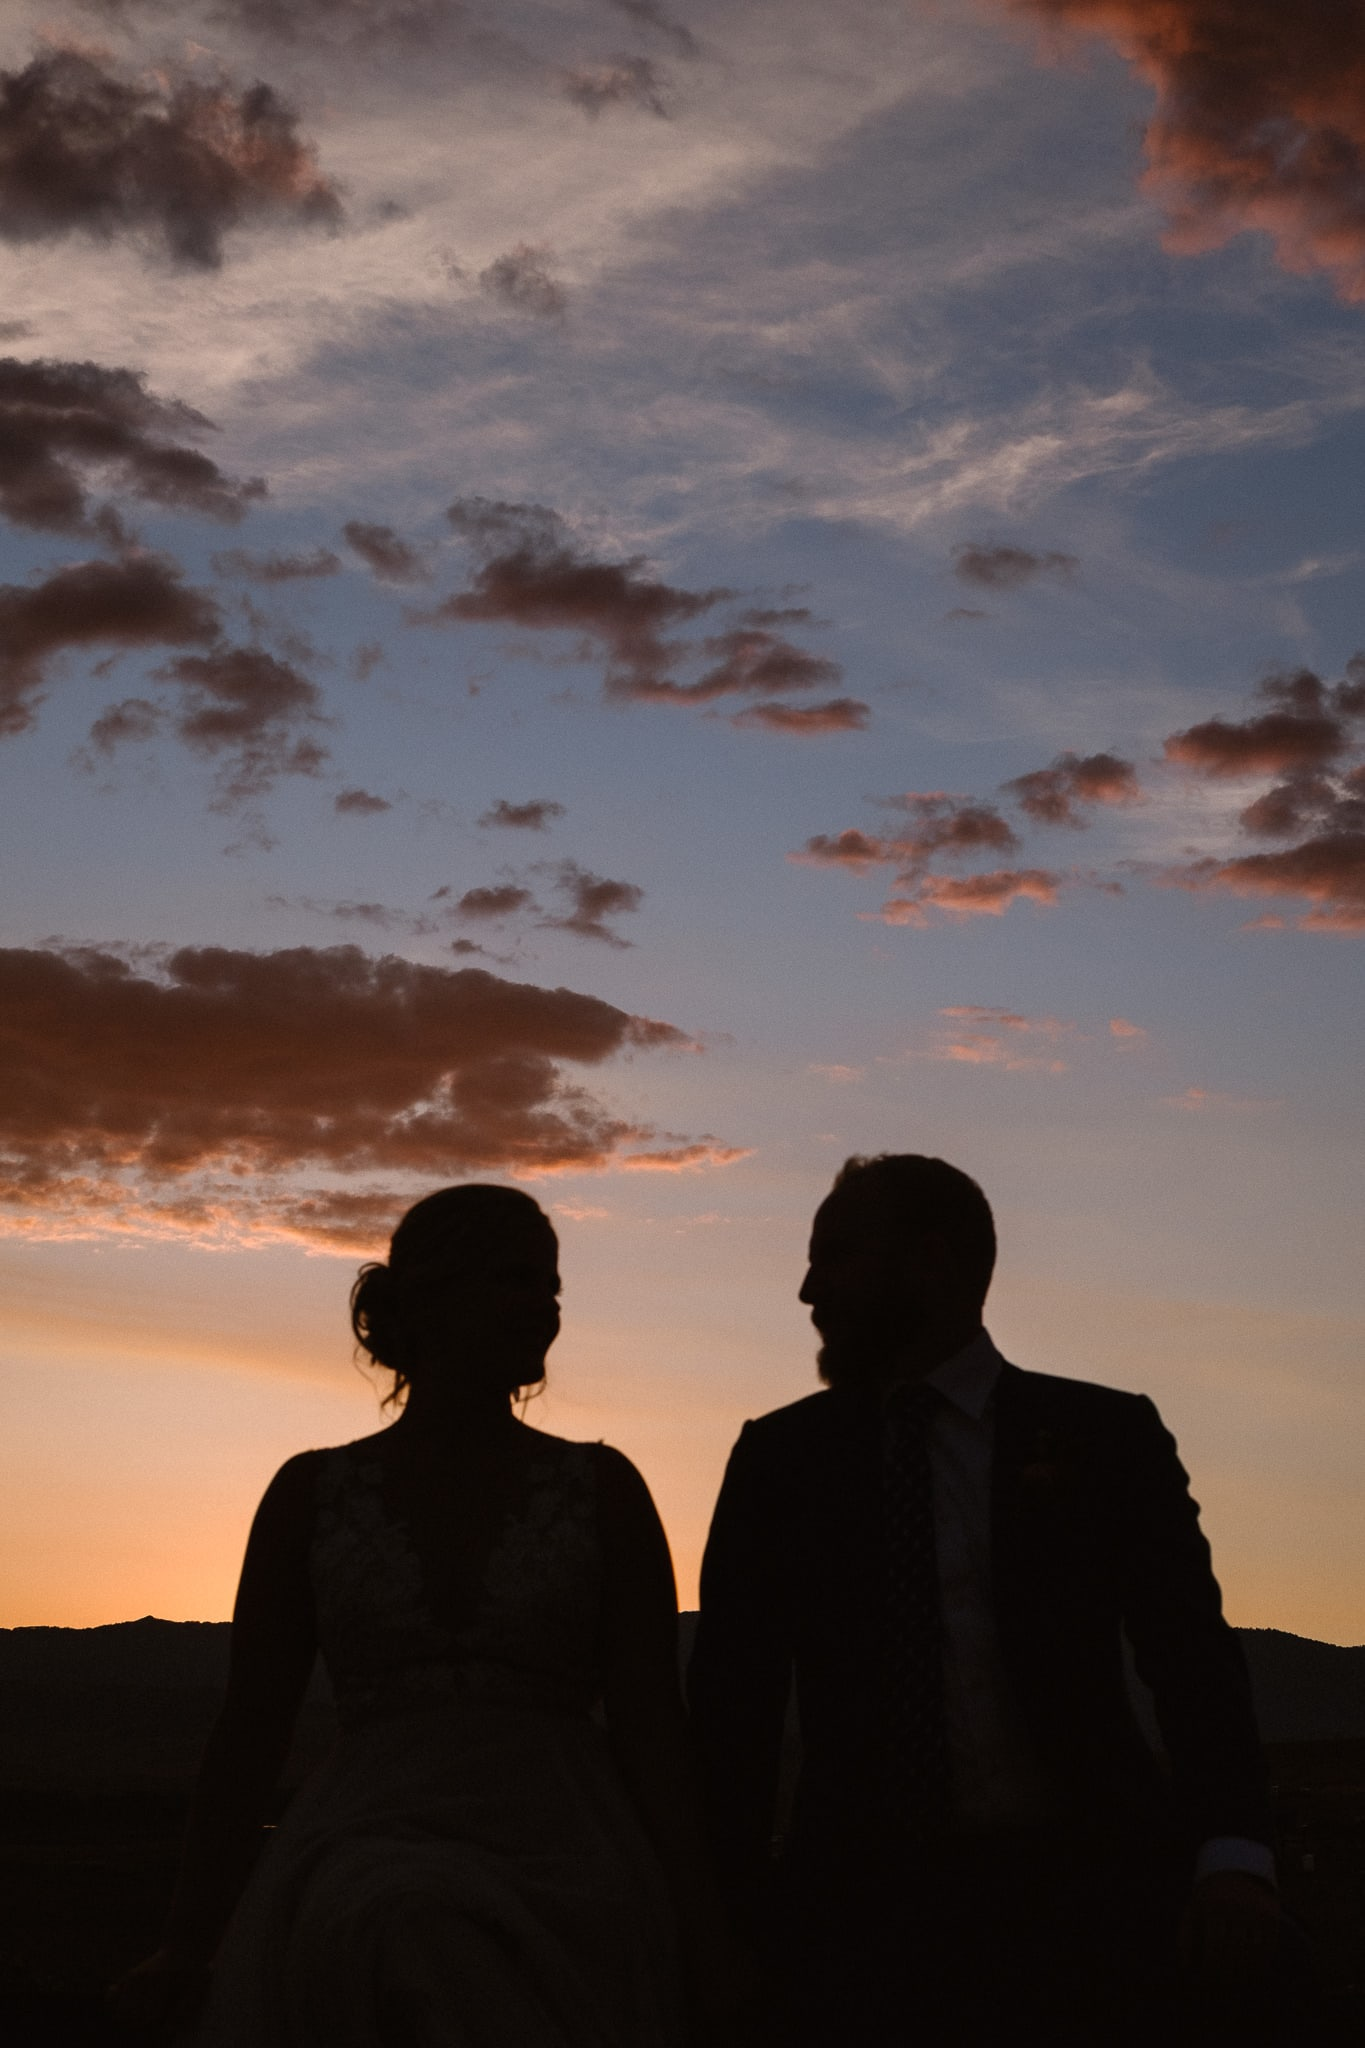 Steamboat Springs wedding photographer, La Joya Dulce wedding, Colorado ranch wedding venues, bride and groom portraits at sunset, bride and groom silhouettes at sunset